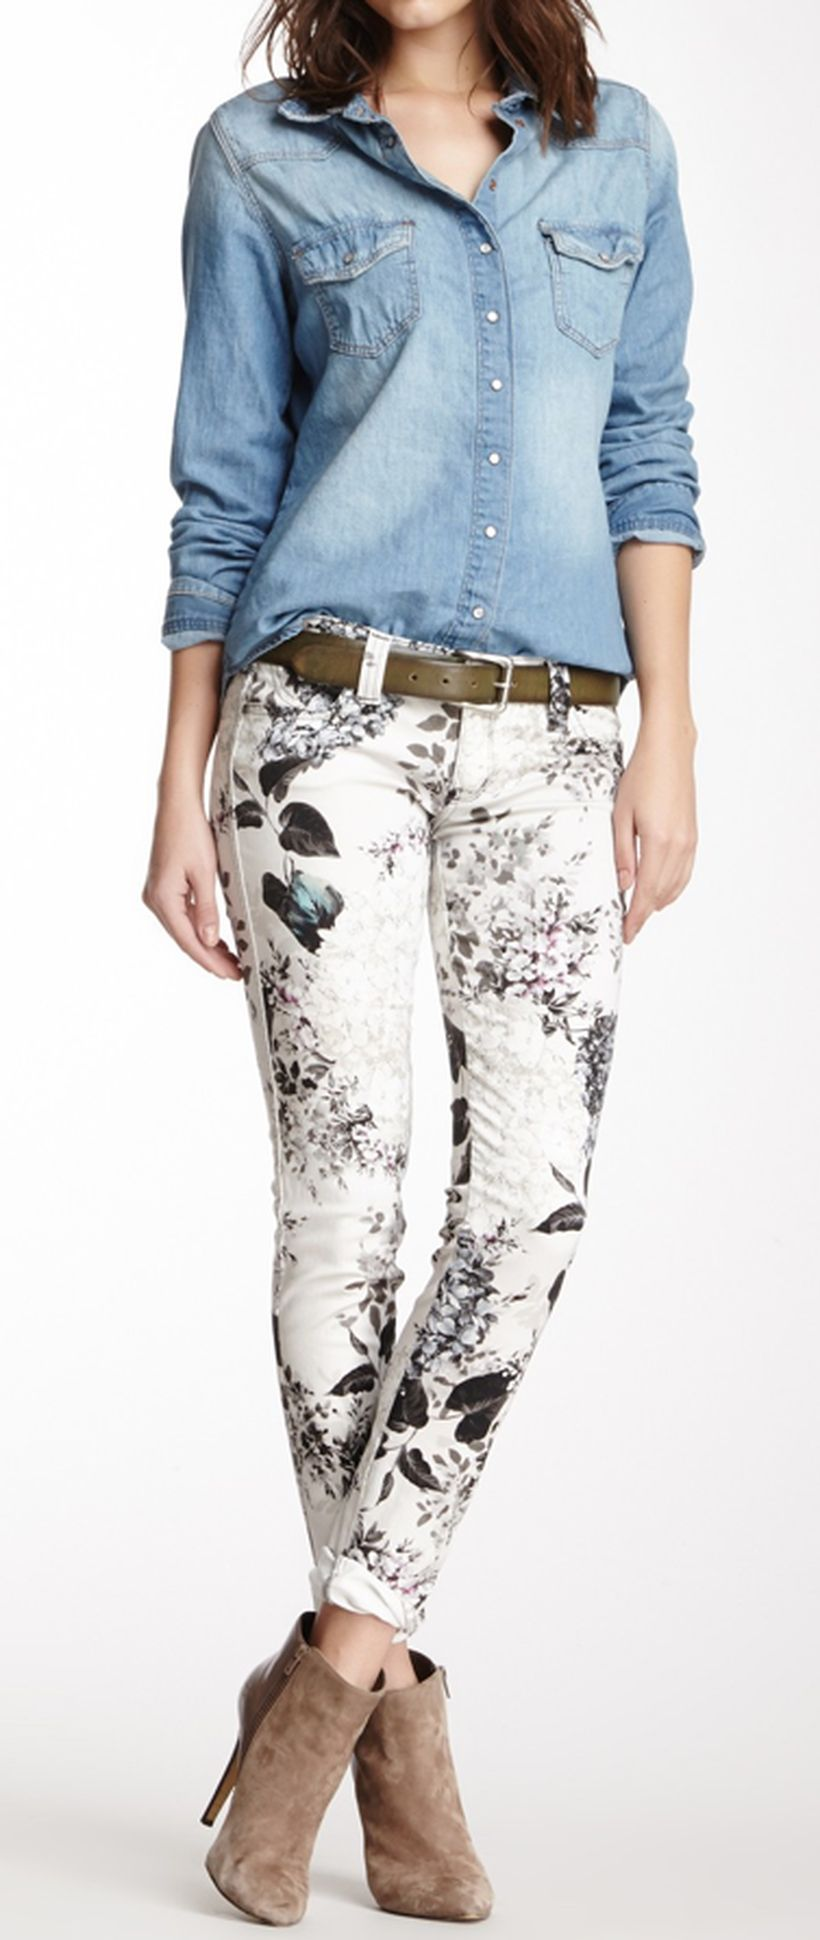 Perfect ways to wear white denim jeans outfits 92